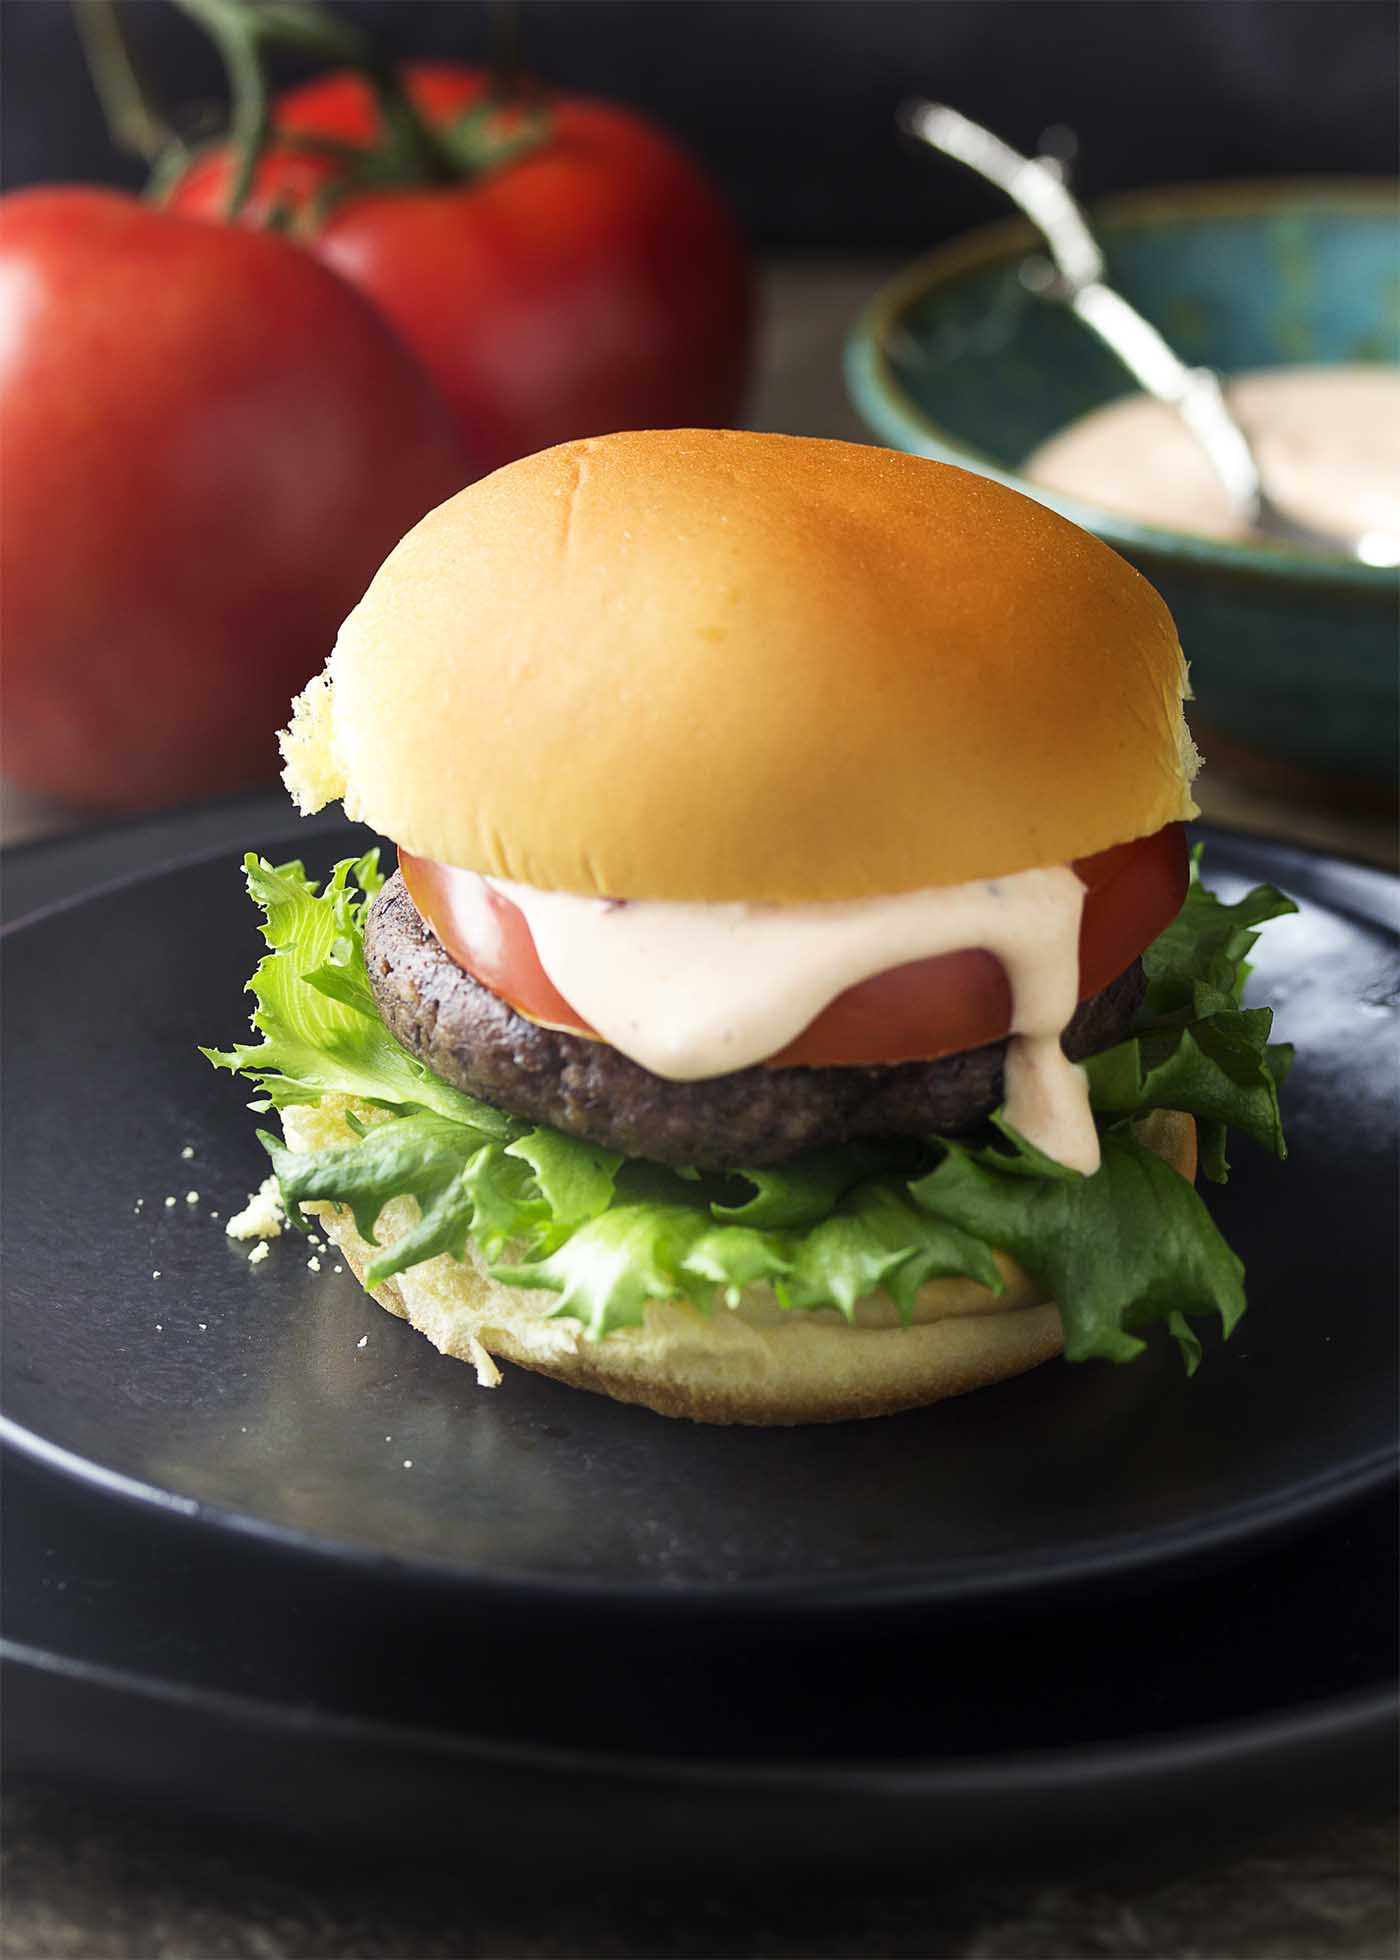 Close up of a bean burger on a black plate. Burger on a bun with lettuce, tomato, and sauce.